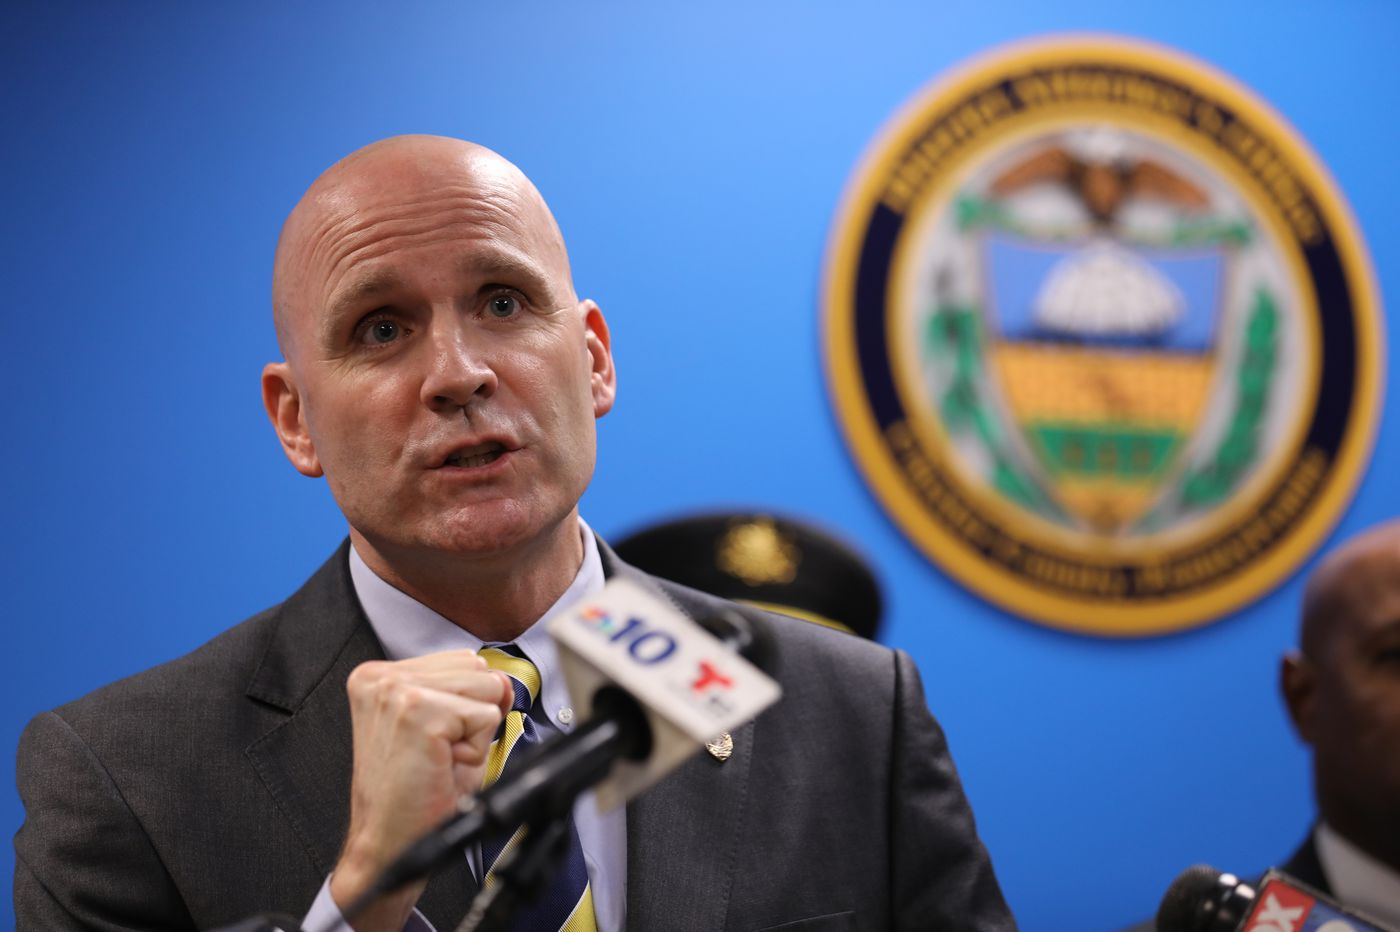 Chester County DA calls for dismissal of state police union's lawsuit over 'do not call' list